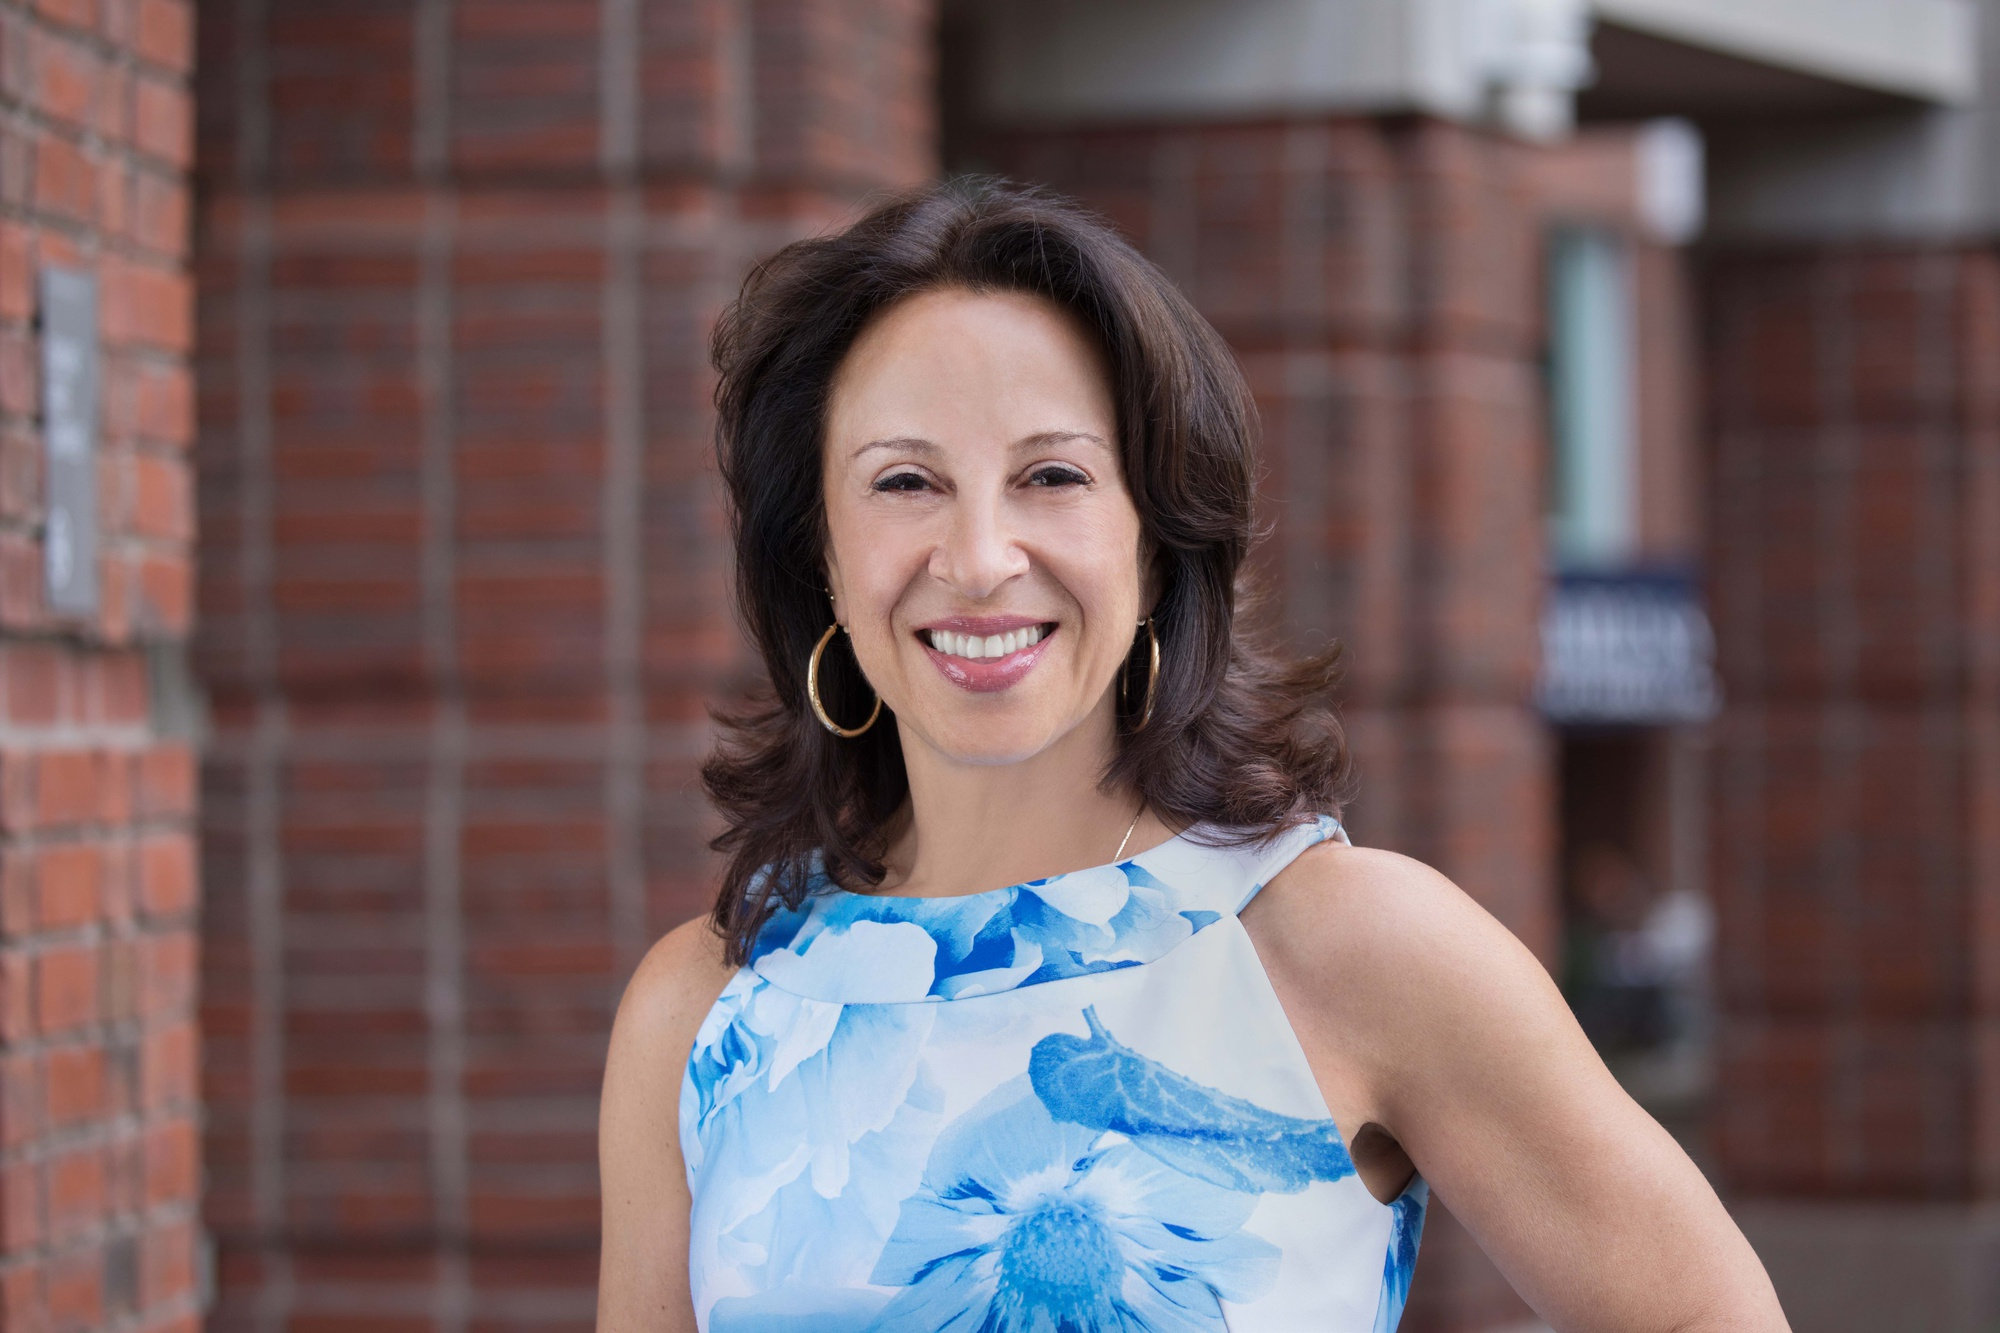 Maria L. Hinojosa is a fellow at the Harvard Kennedy School's Shorenstein Center on Media, Politics and Public Policy.